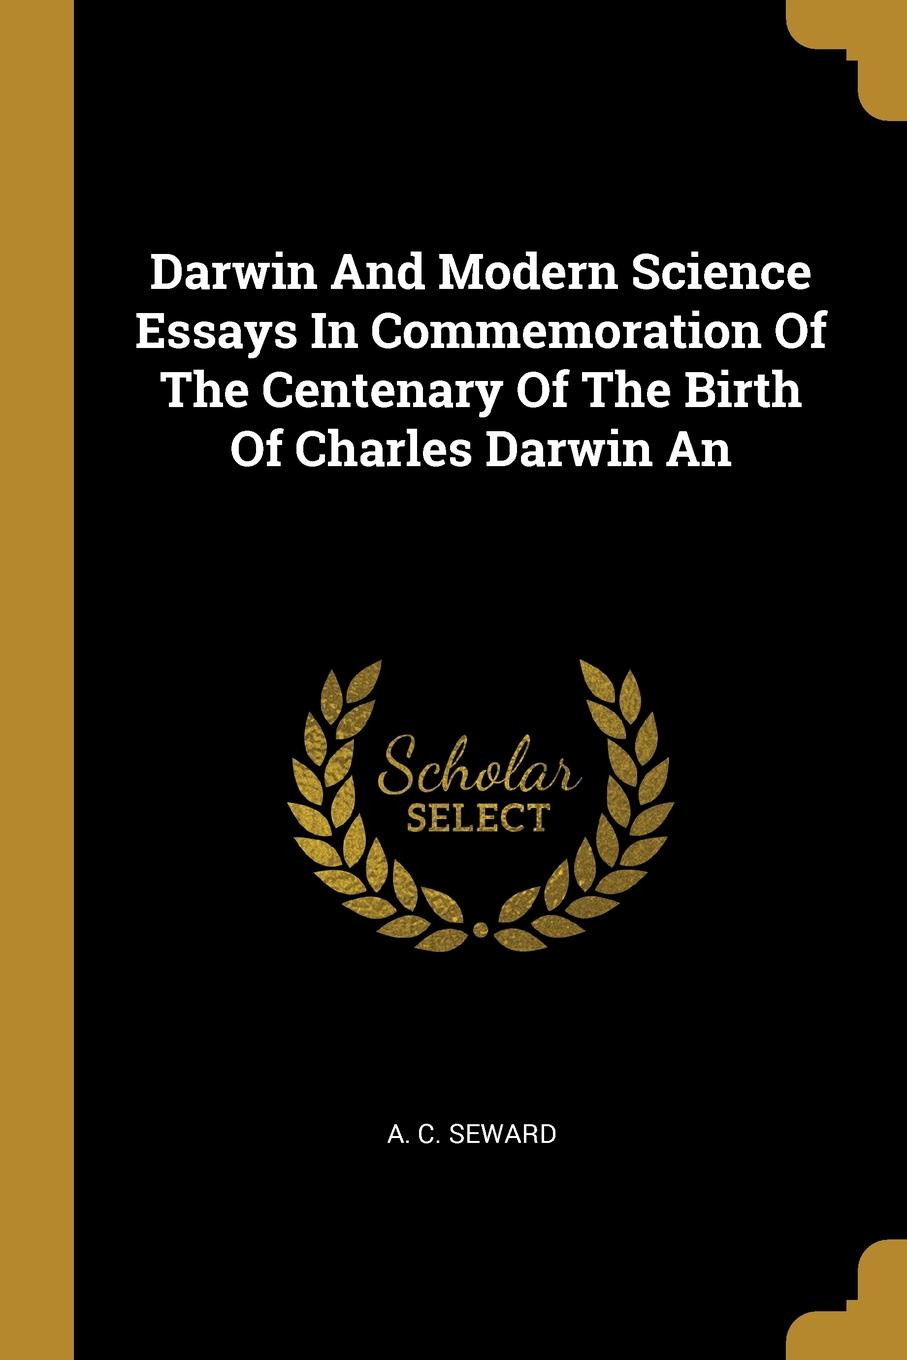 A. C. Seward. Darwin And Modern Science Essays In Commemoration Of The Centenary Of The Birth Of Charles Darwin An